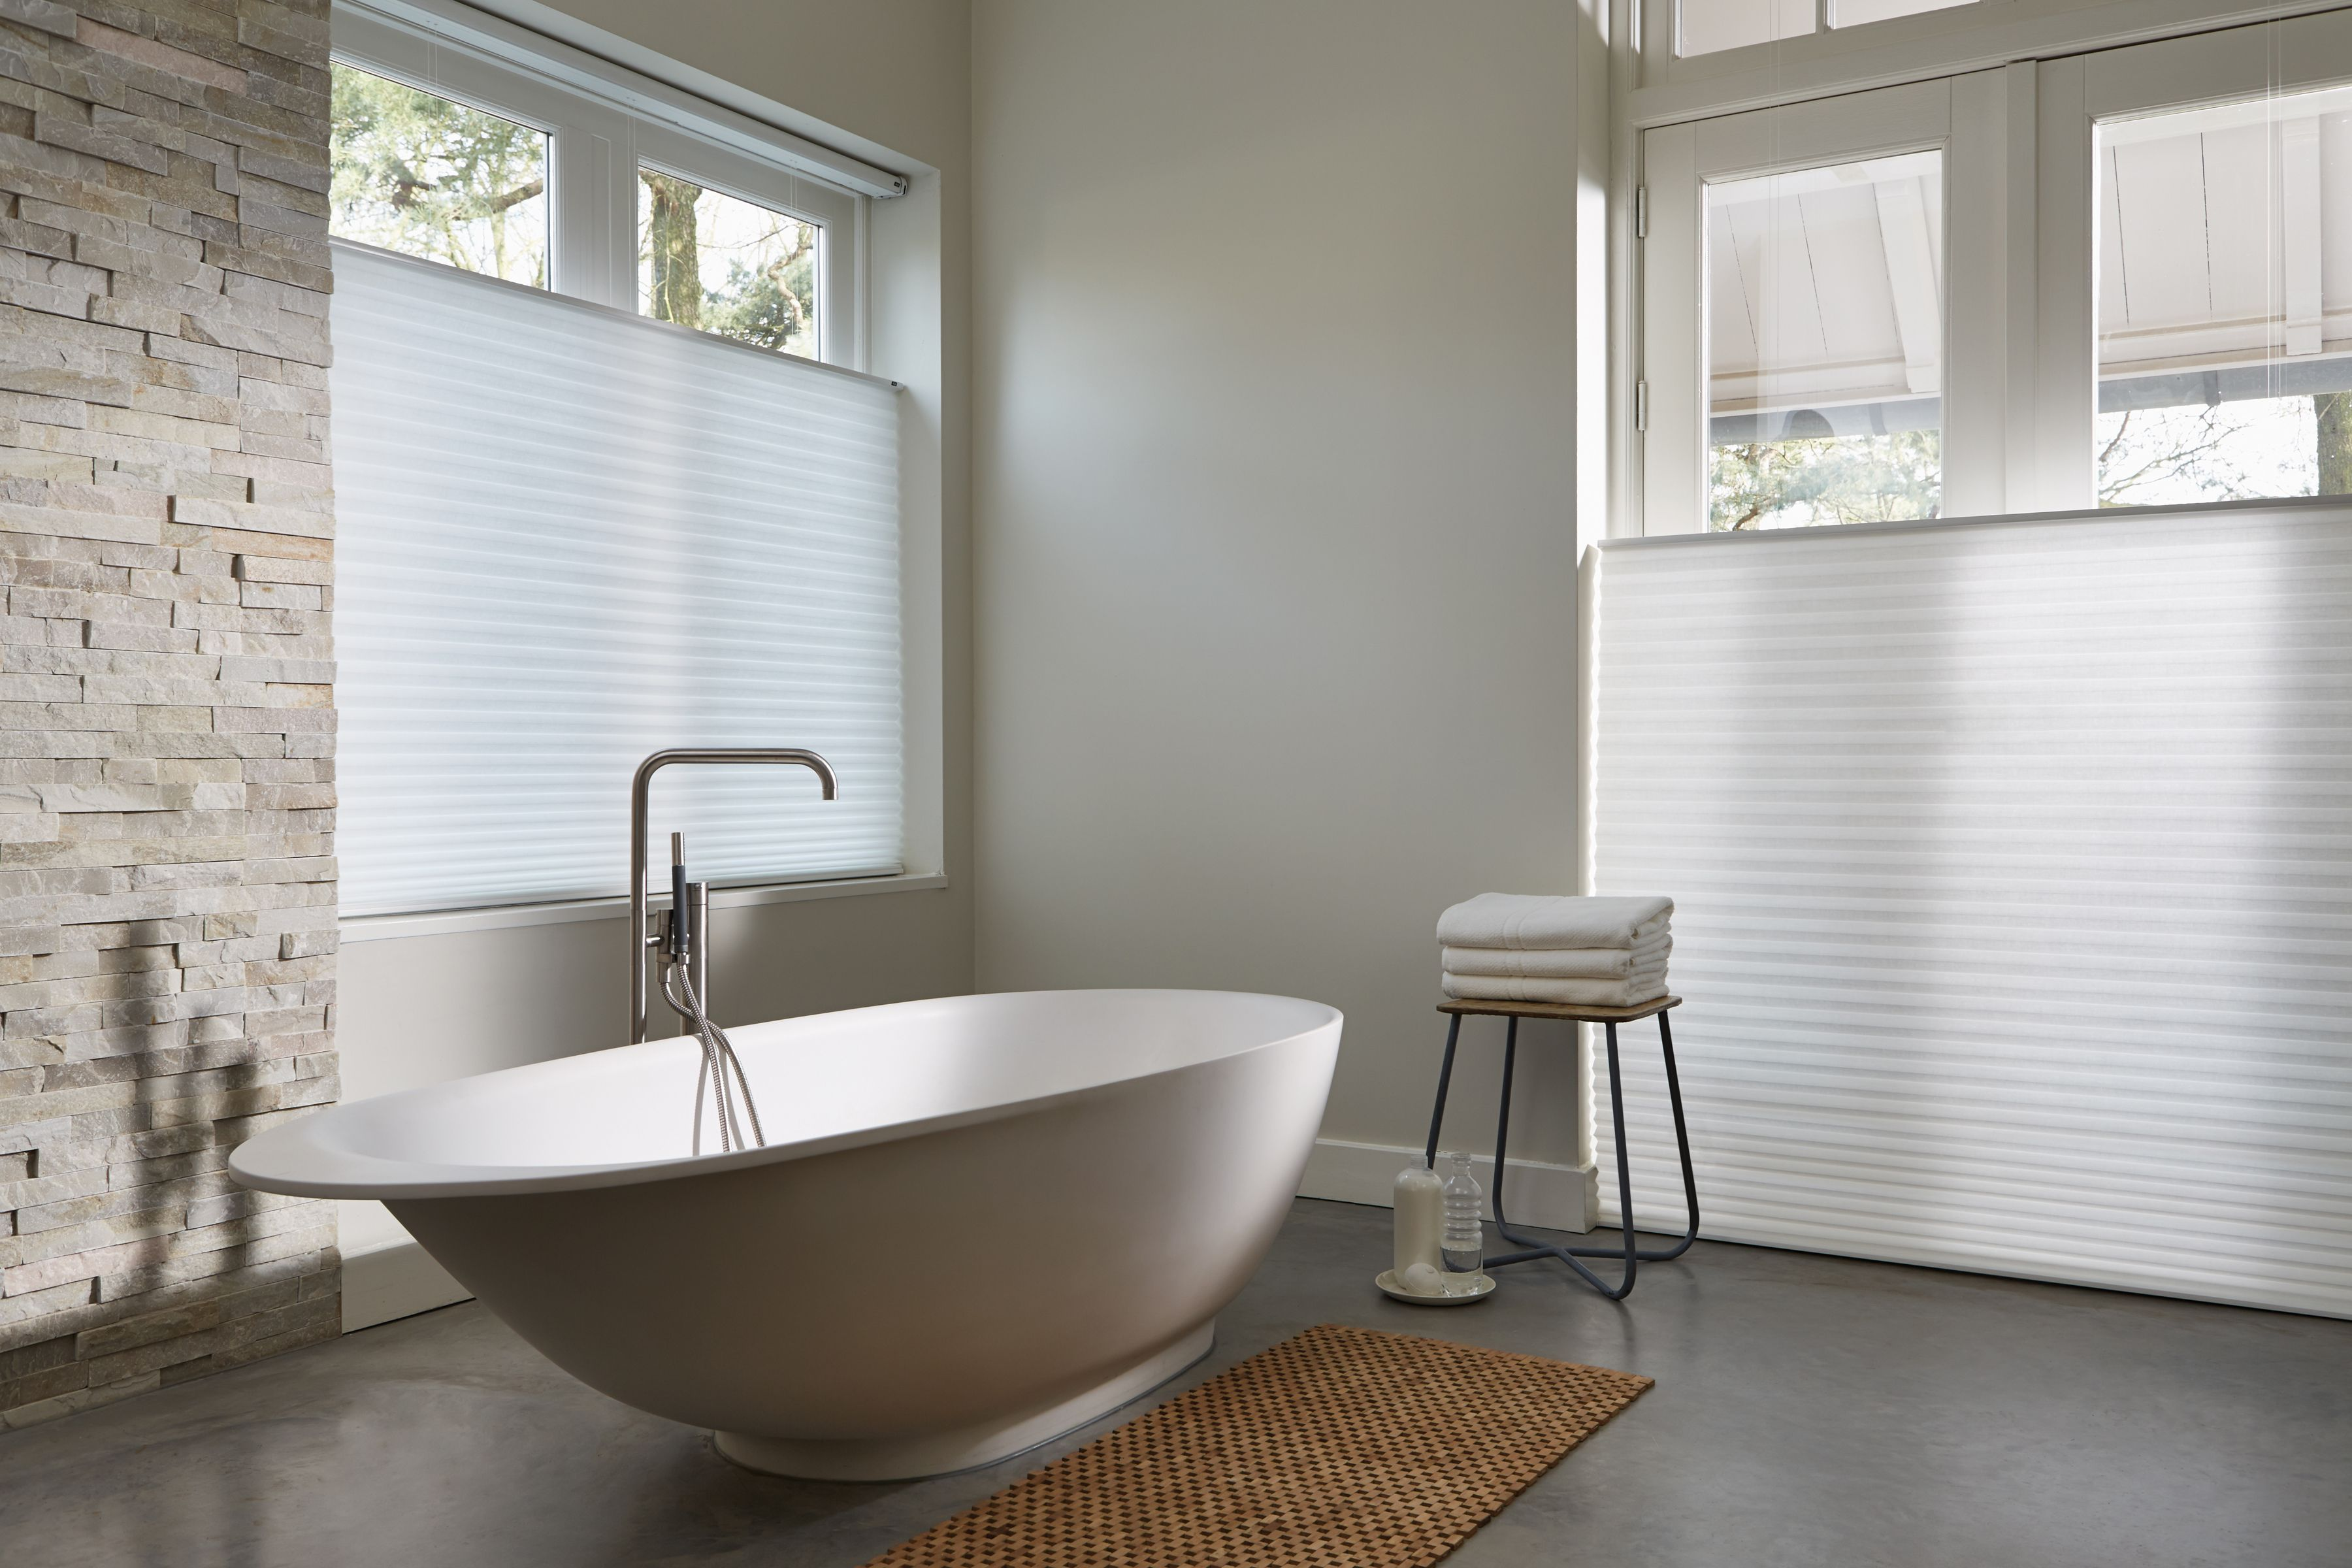 Beautiful Bathroom Blinds designed to provide privacy with a beautiful view to the outdoors